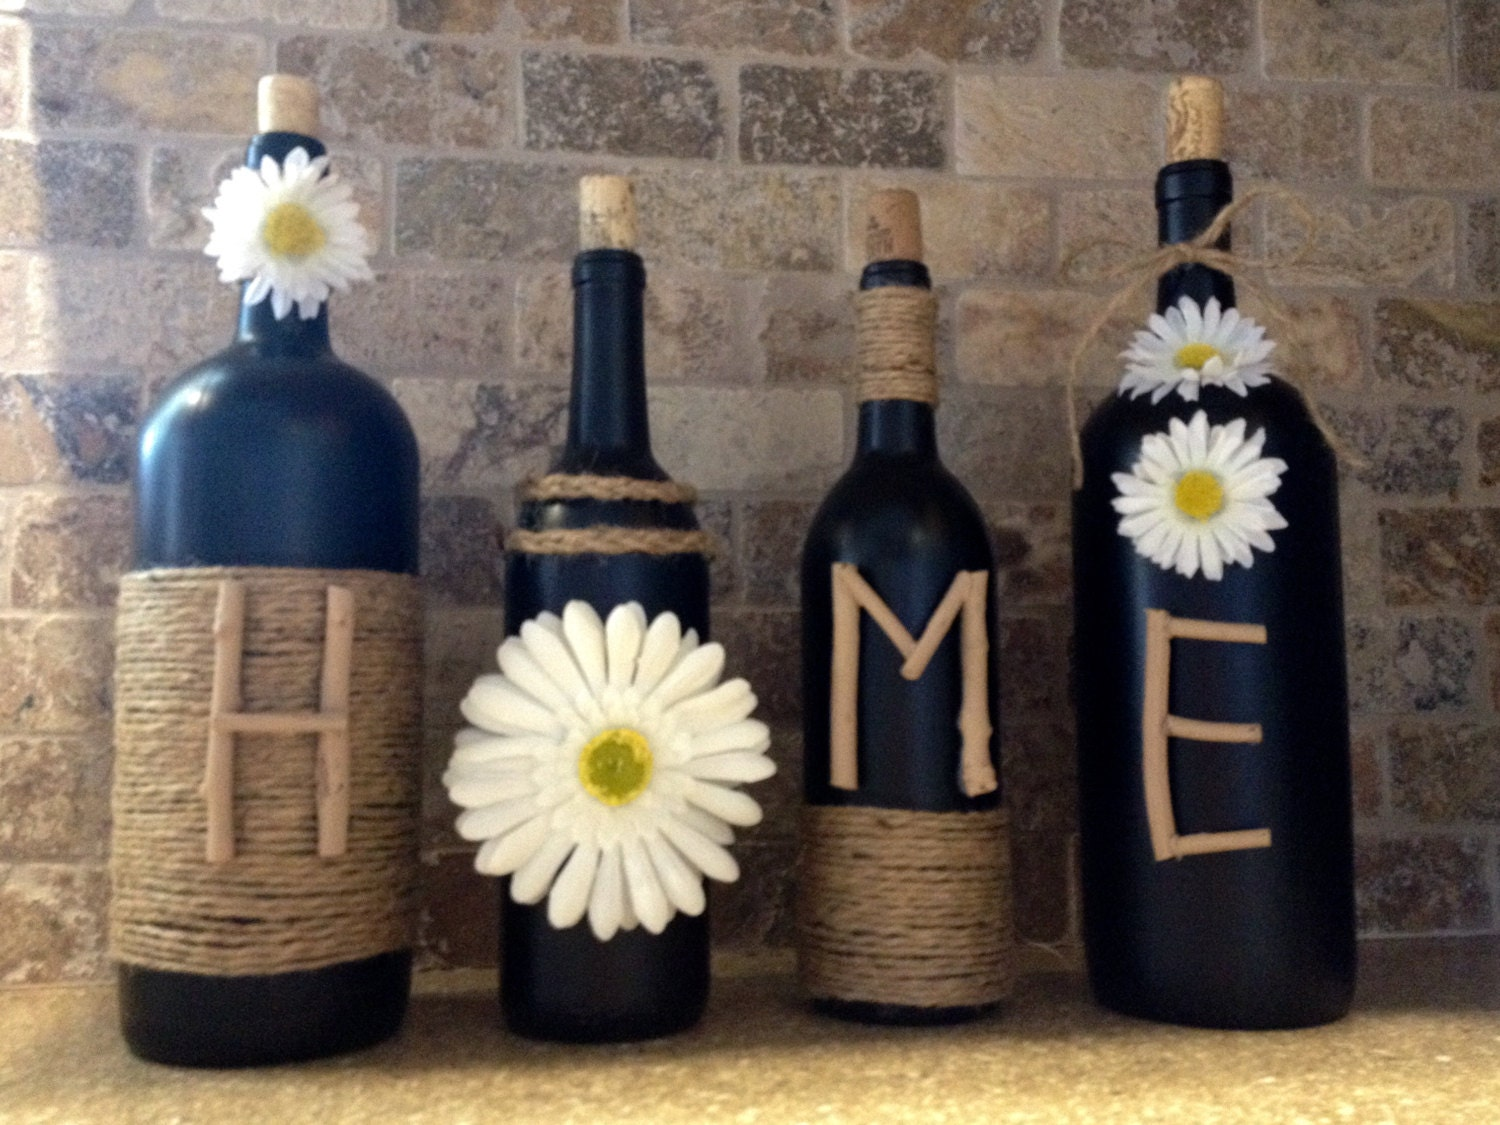 Home wine bottle decor home decor wine bottles shabby chic for Wine country decorating ideas